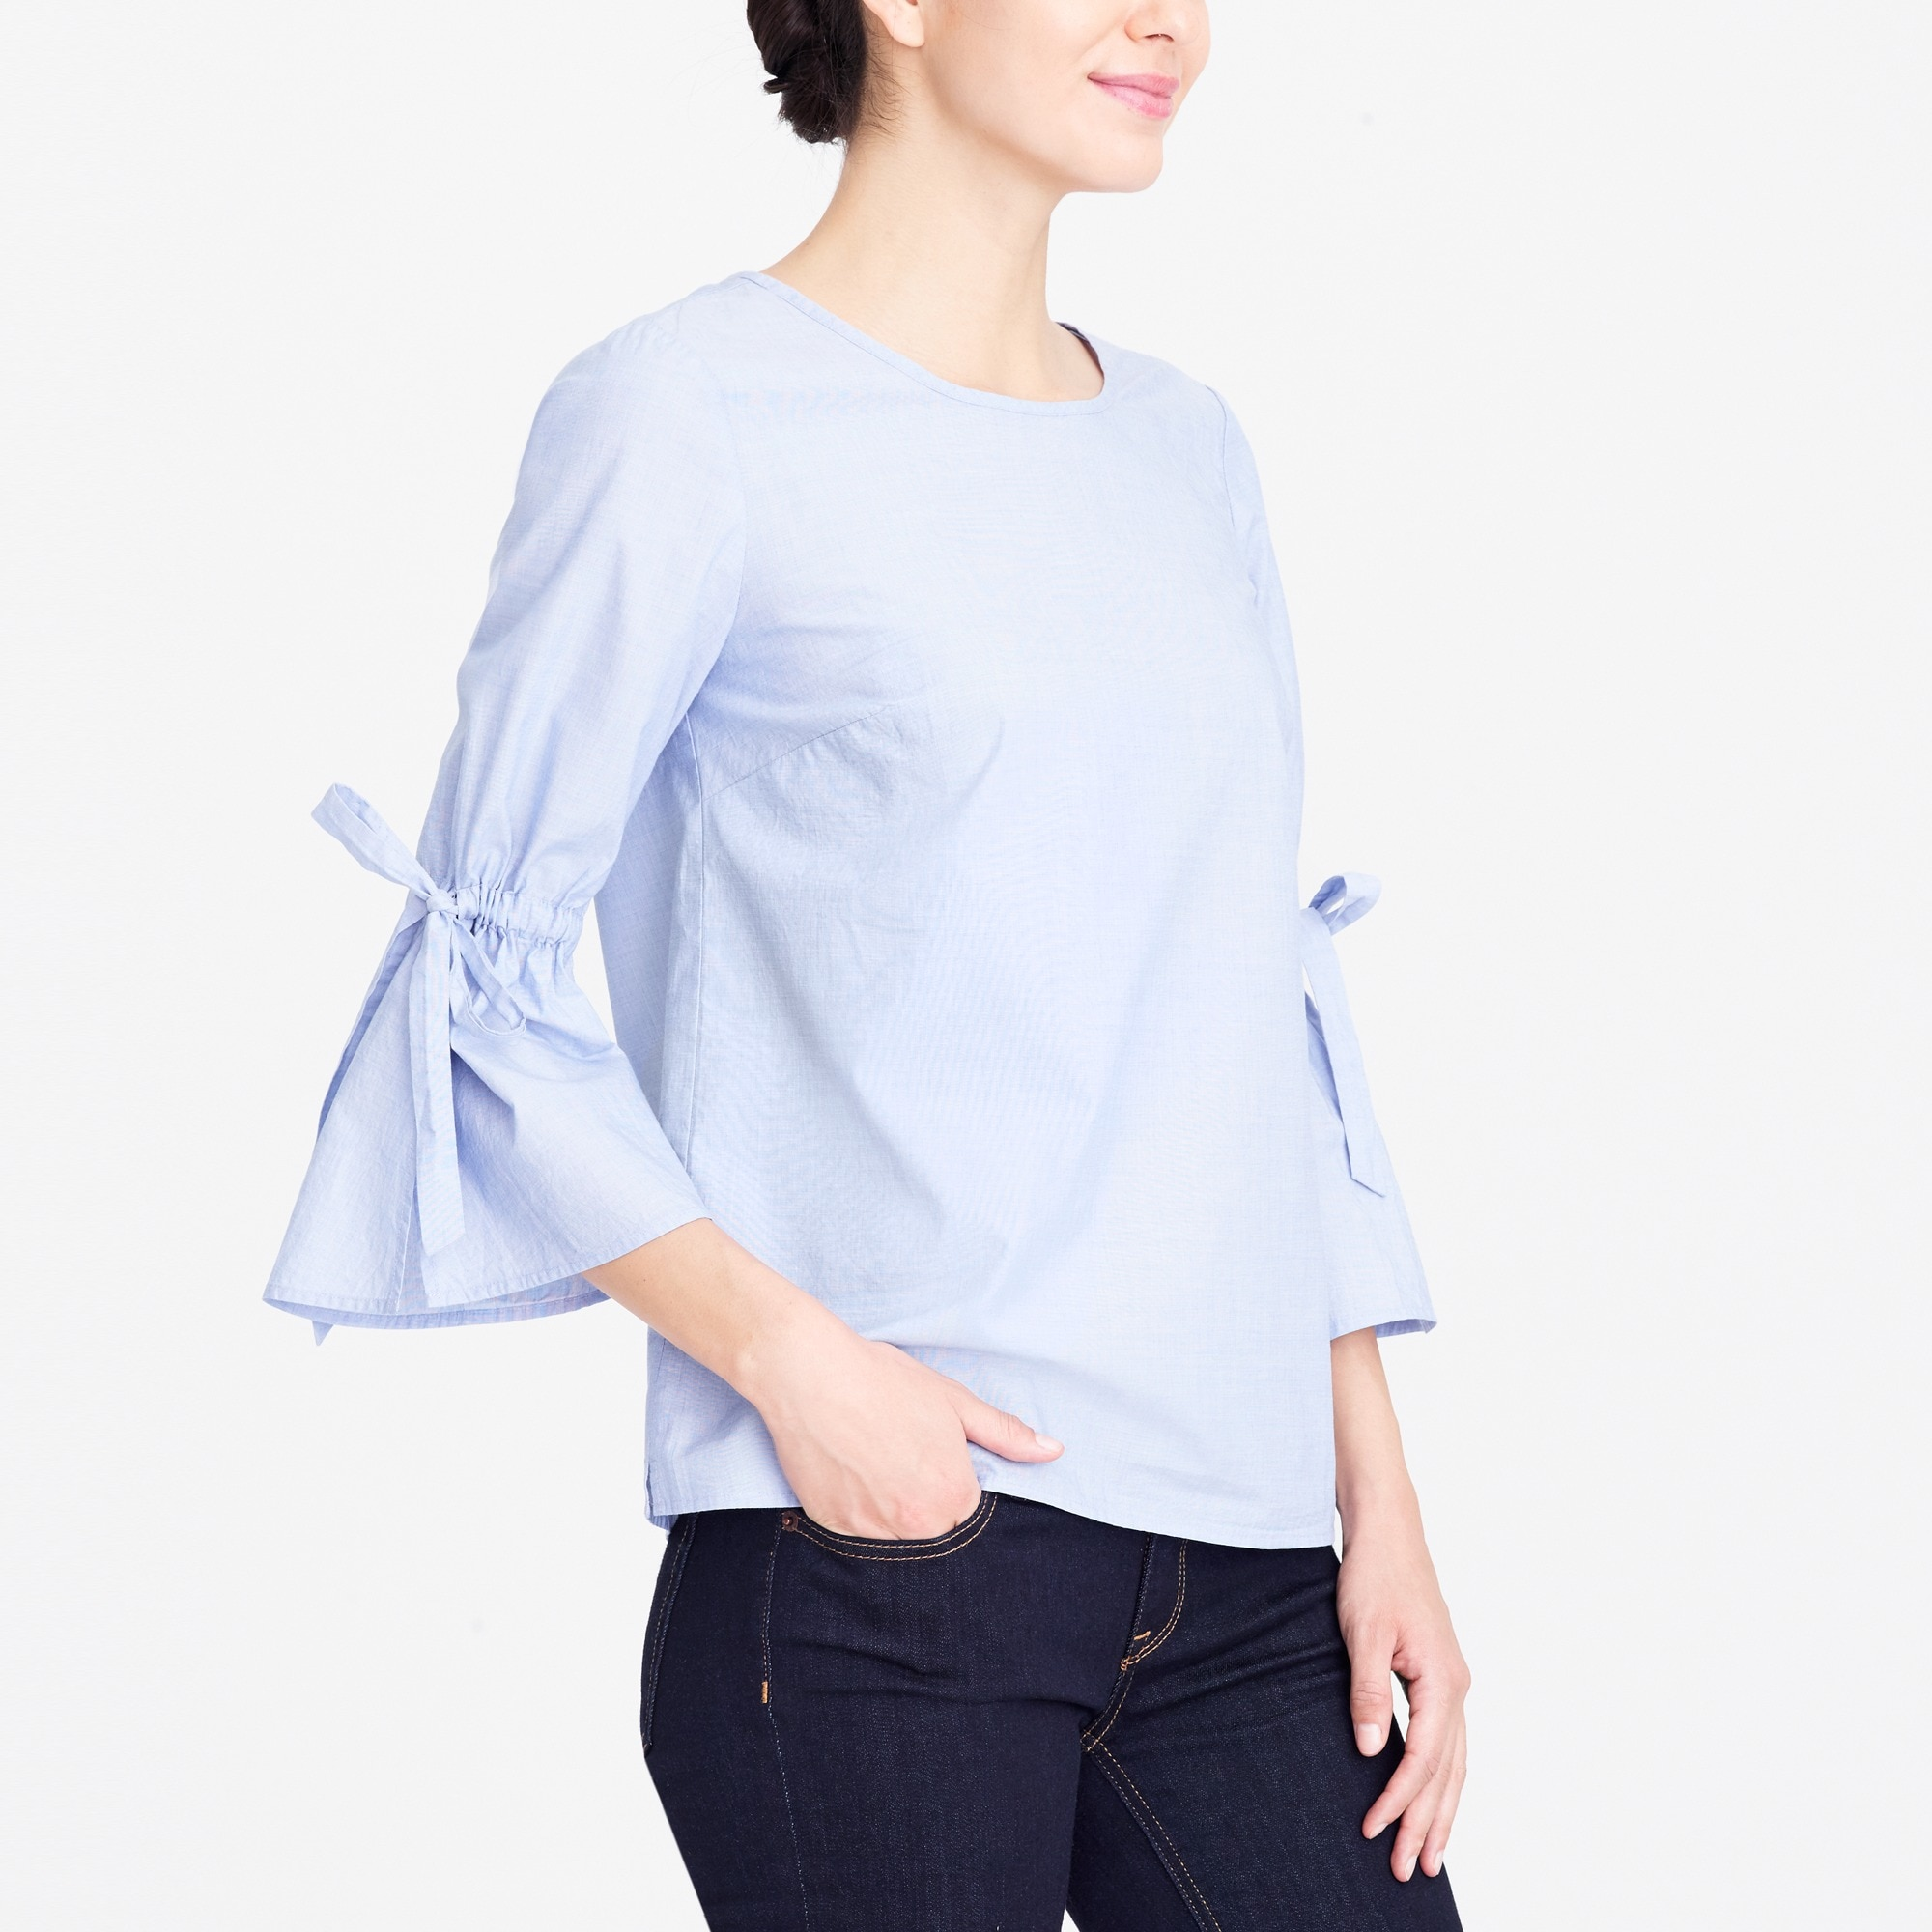 Bow-sleeve top factorywomen new arrivals c